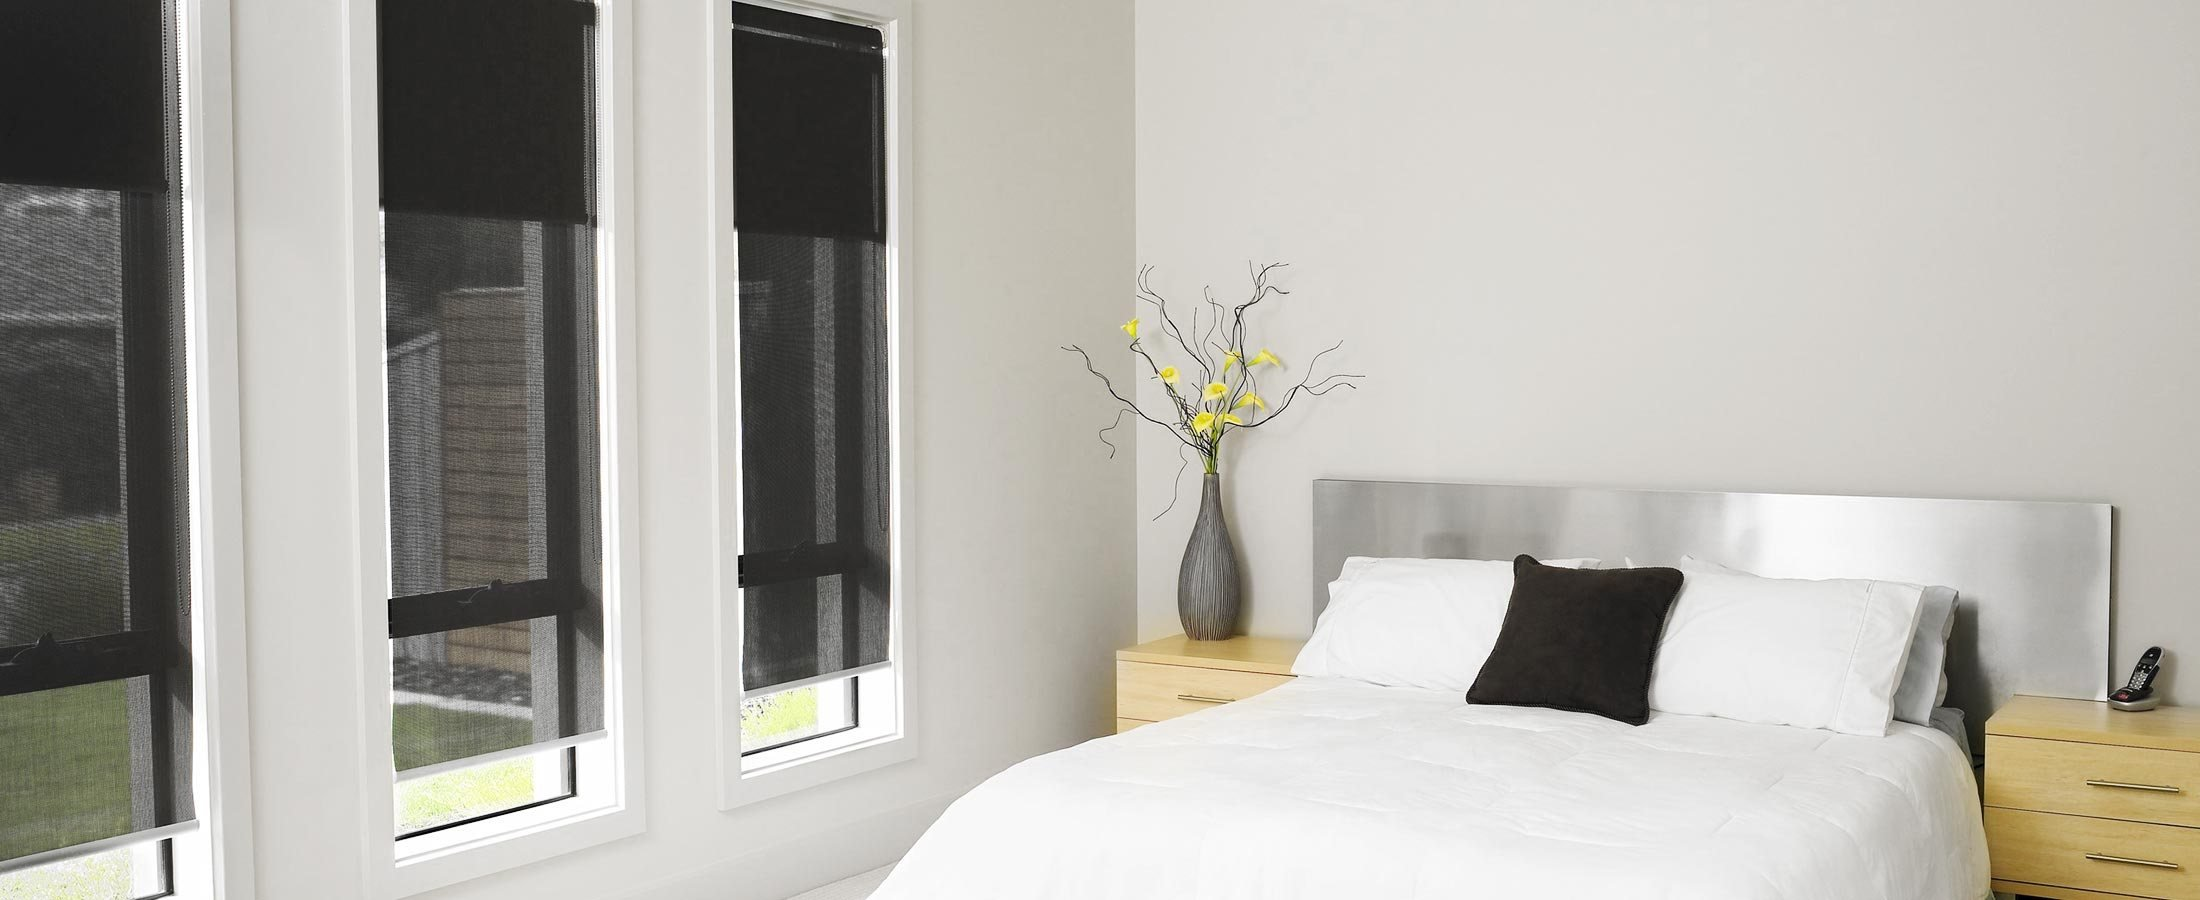 Best Roller Blinds Perth Wa Indoor Window Roller Blinds Abc Blinds With Pictures